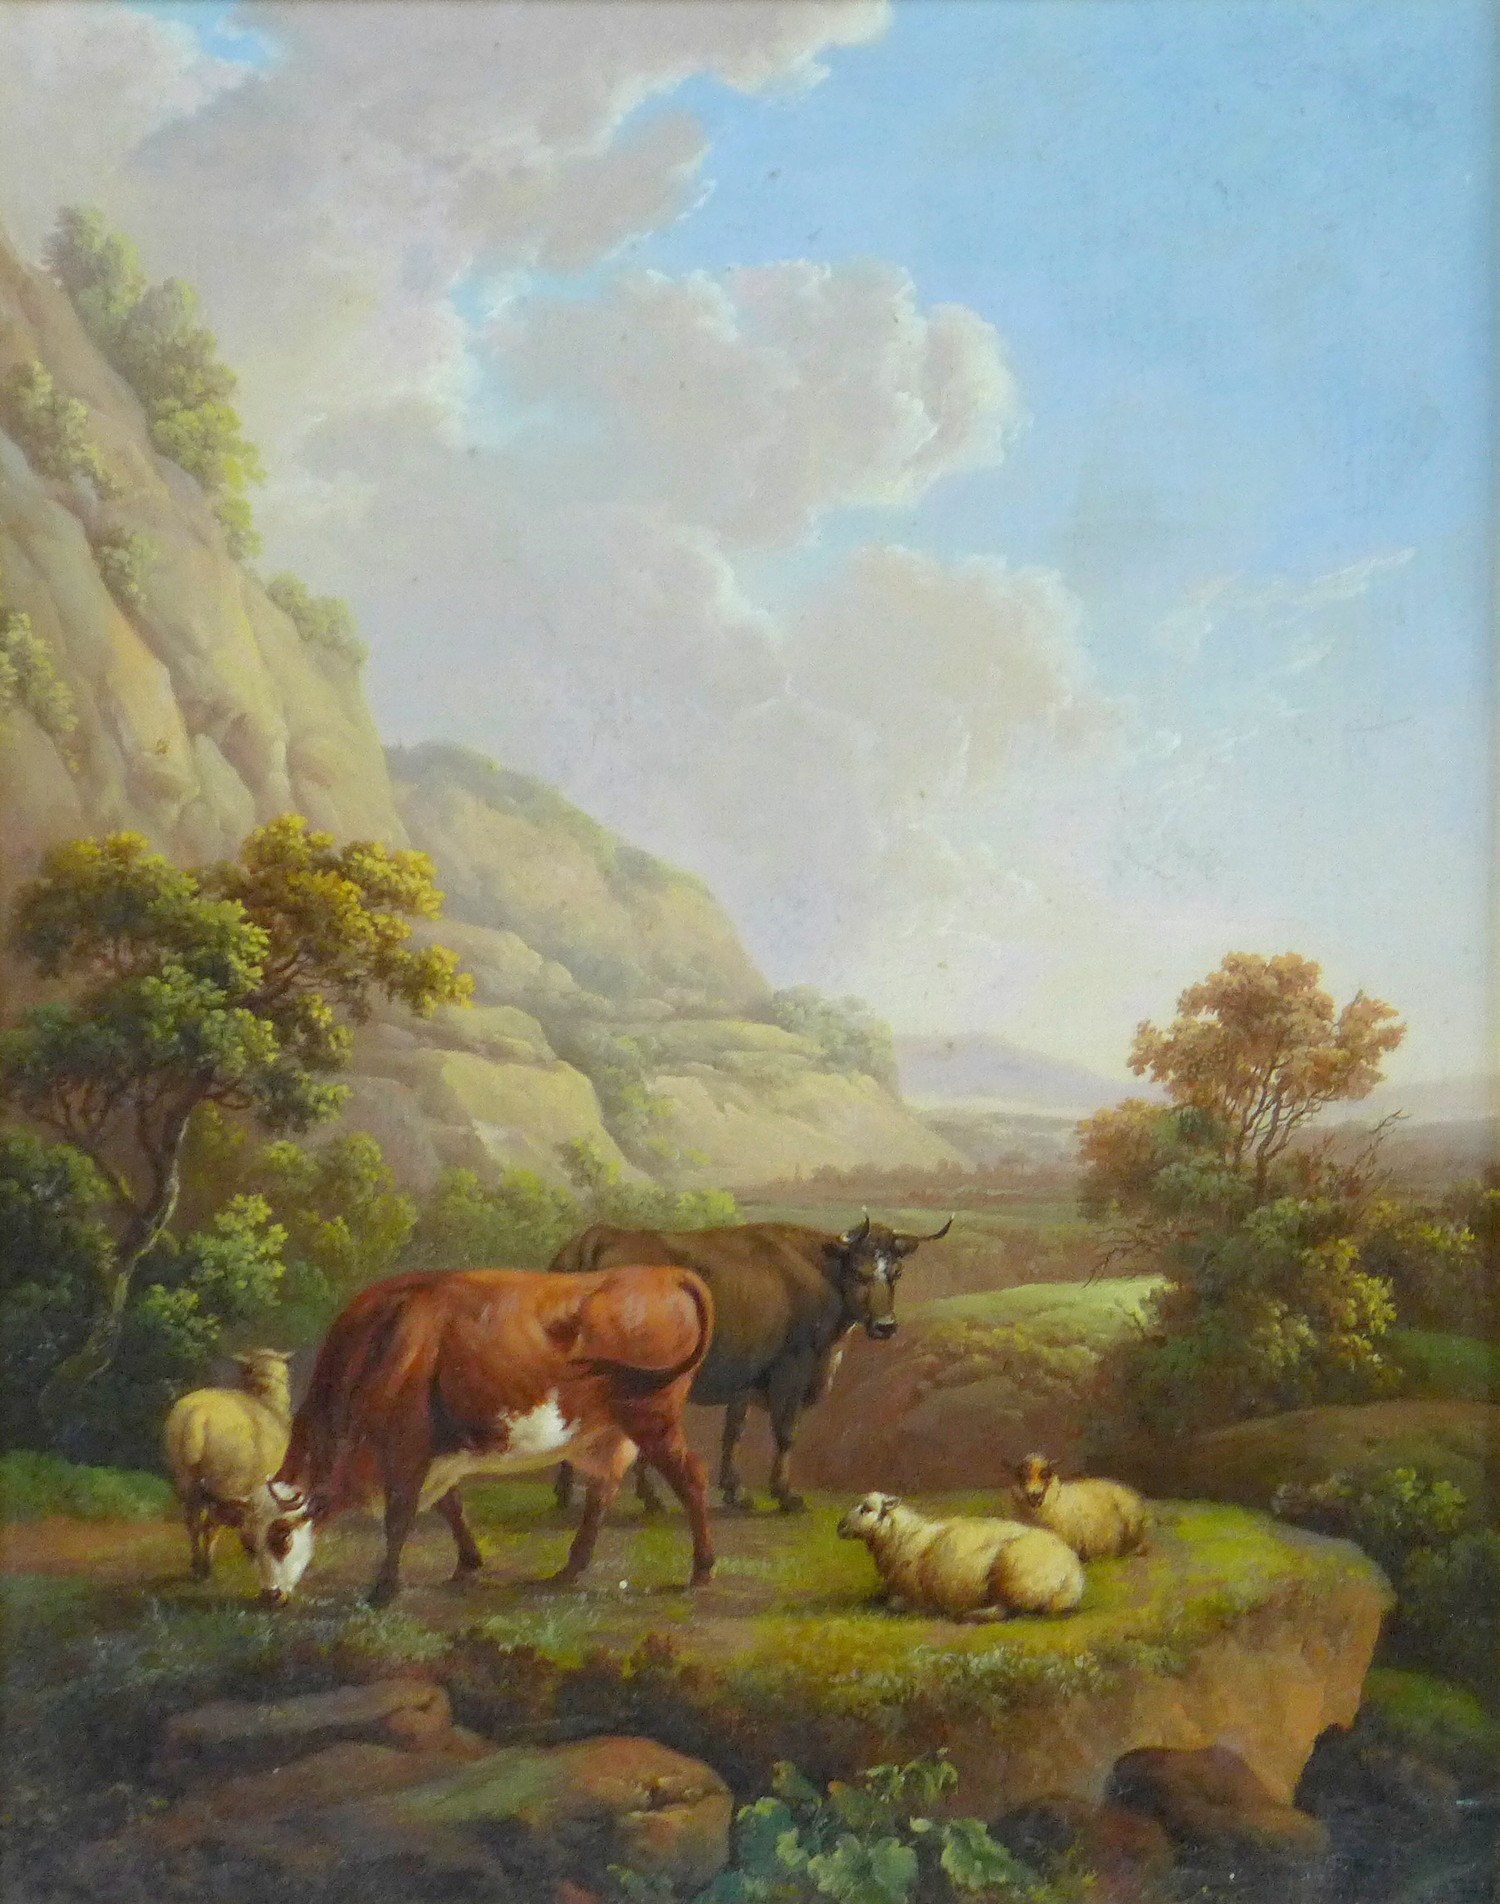 Attributed to Charles Towne (British, 1763-1840): 'Landscape & Cattle', signed 'Town' to a rock in